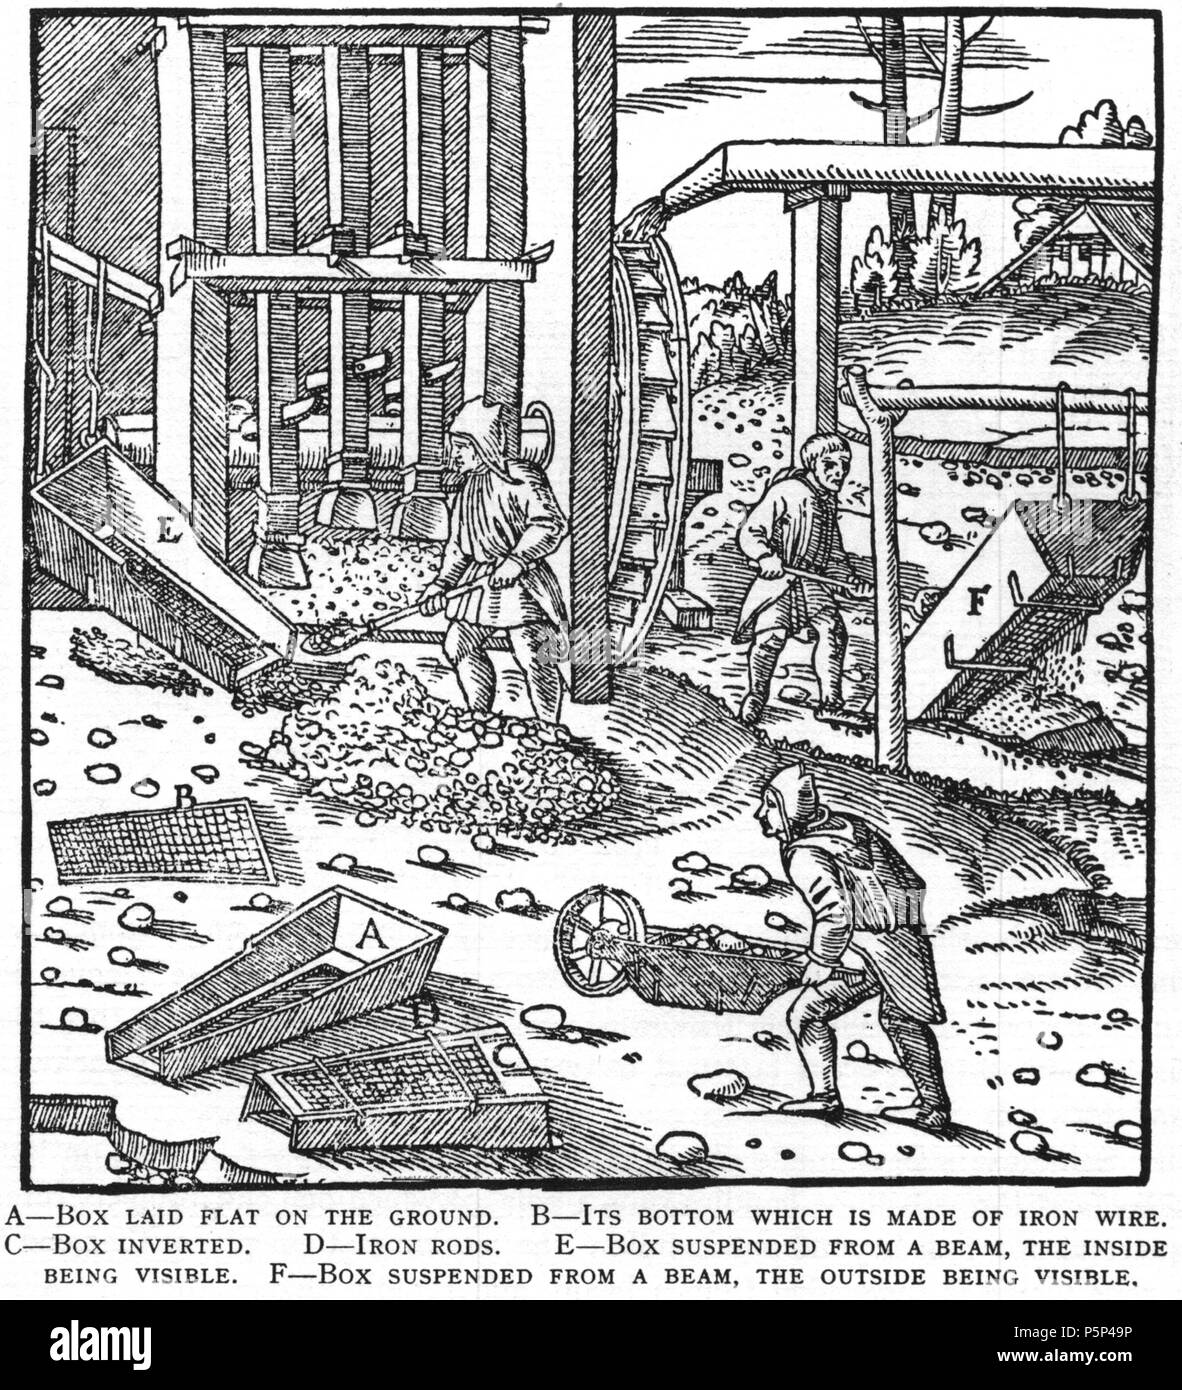 n a woodcut illustration from de re metallica by ge ius agricola Redes En Accion n a woodcut illustration from de re metallica by ge ius agricola this is a 300dpi scan from the 1950 dover edition of the 1913 hoover translation of the